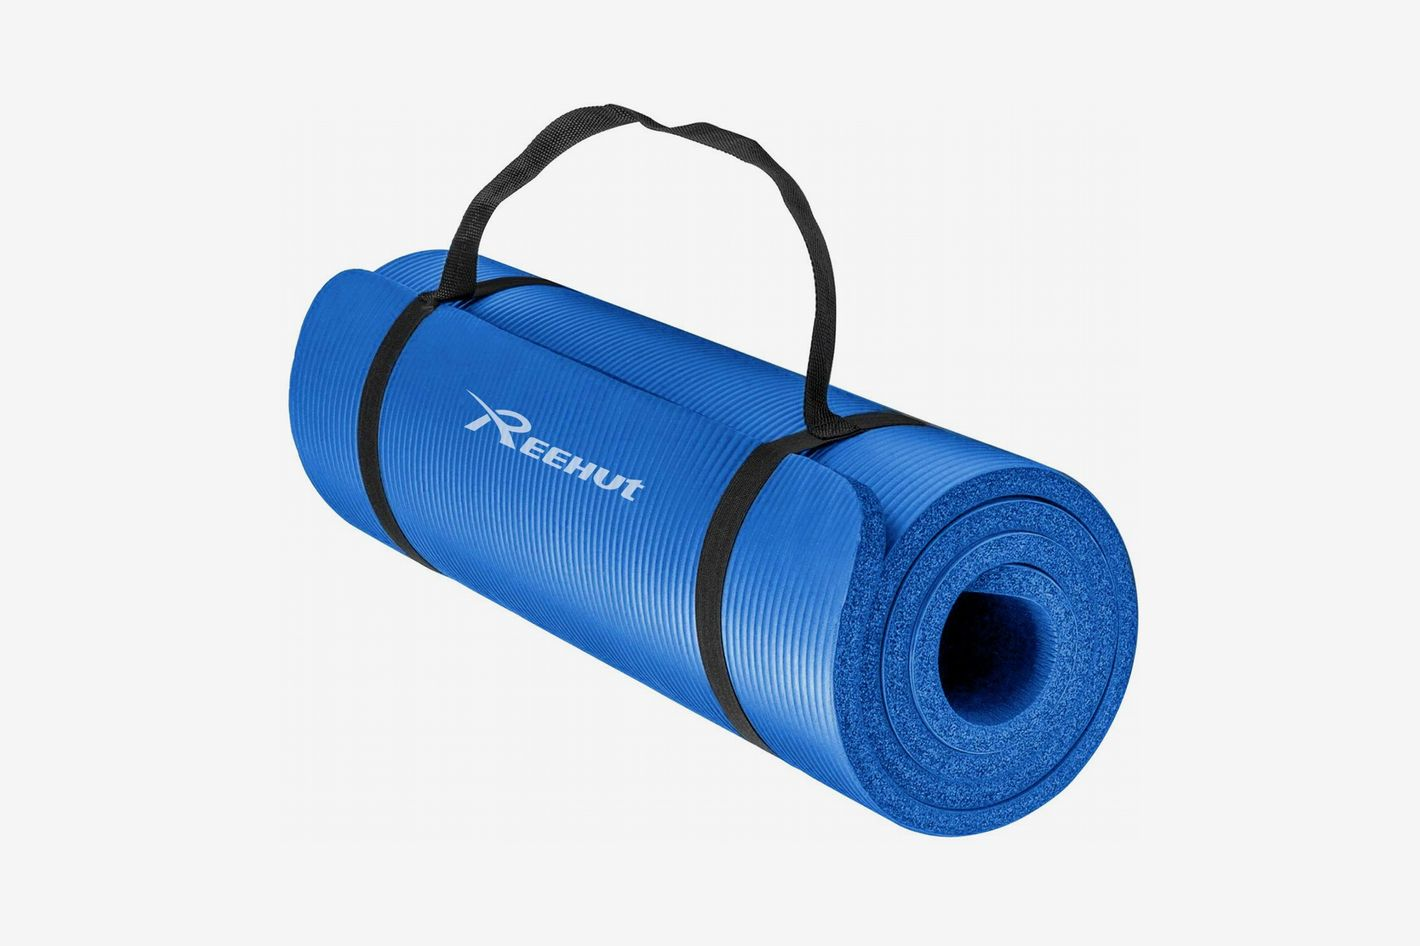 REEHUT /2-Inch Extra Thick High Density Yoga Mat with Carrying Strap